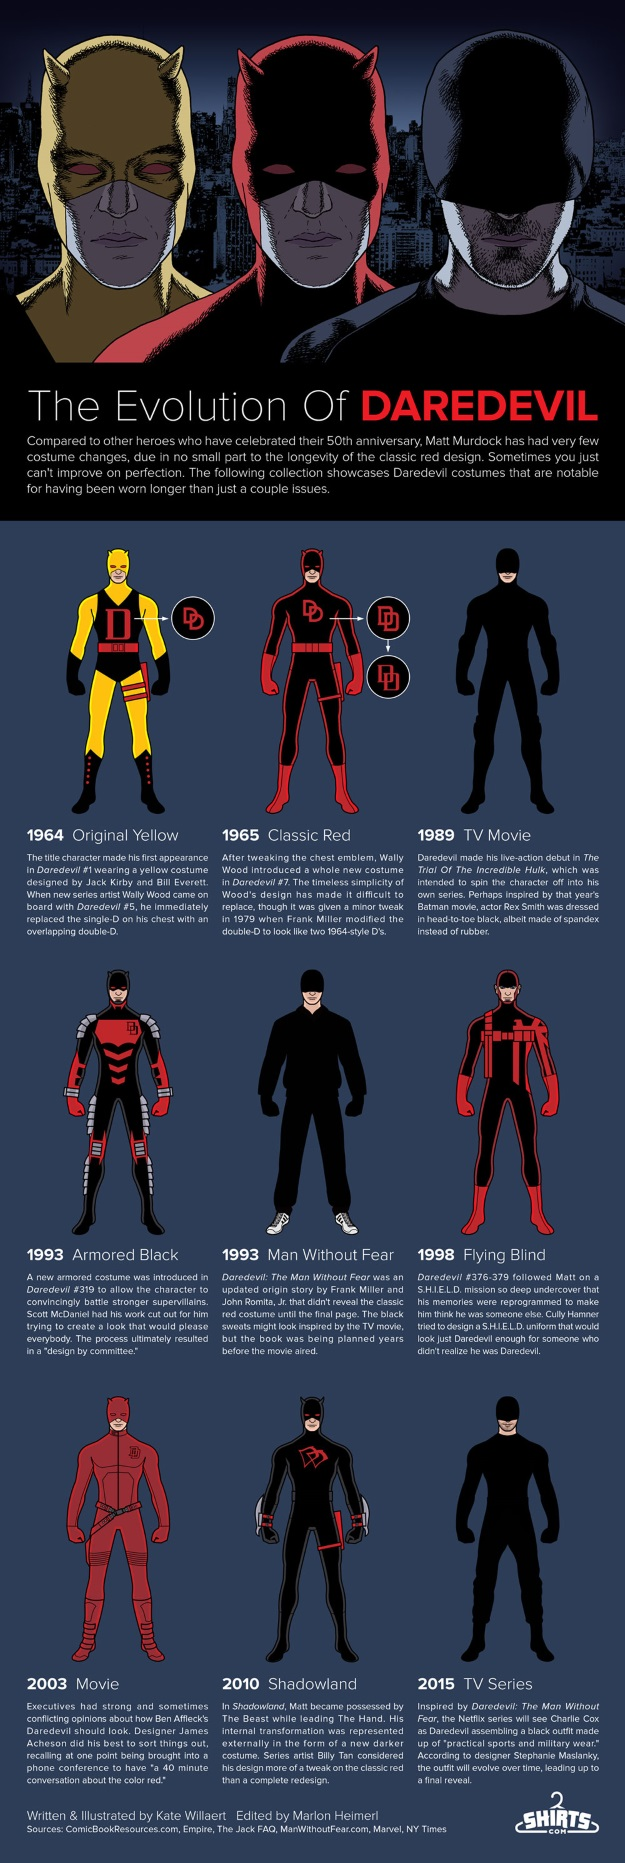 the-evolution-of-daredevil-infographic